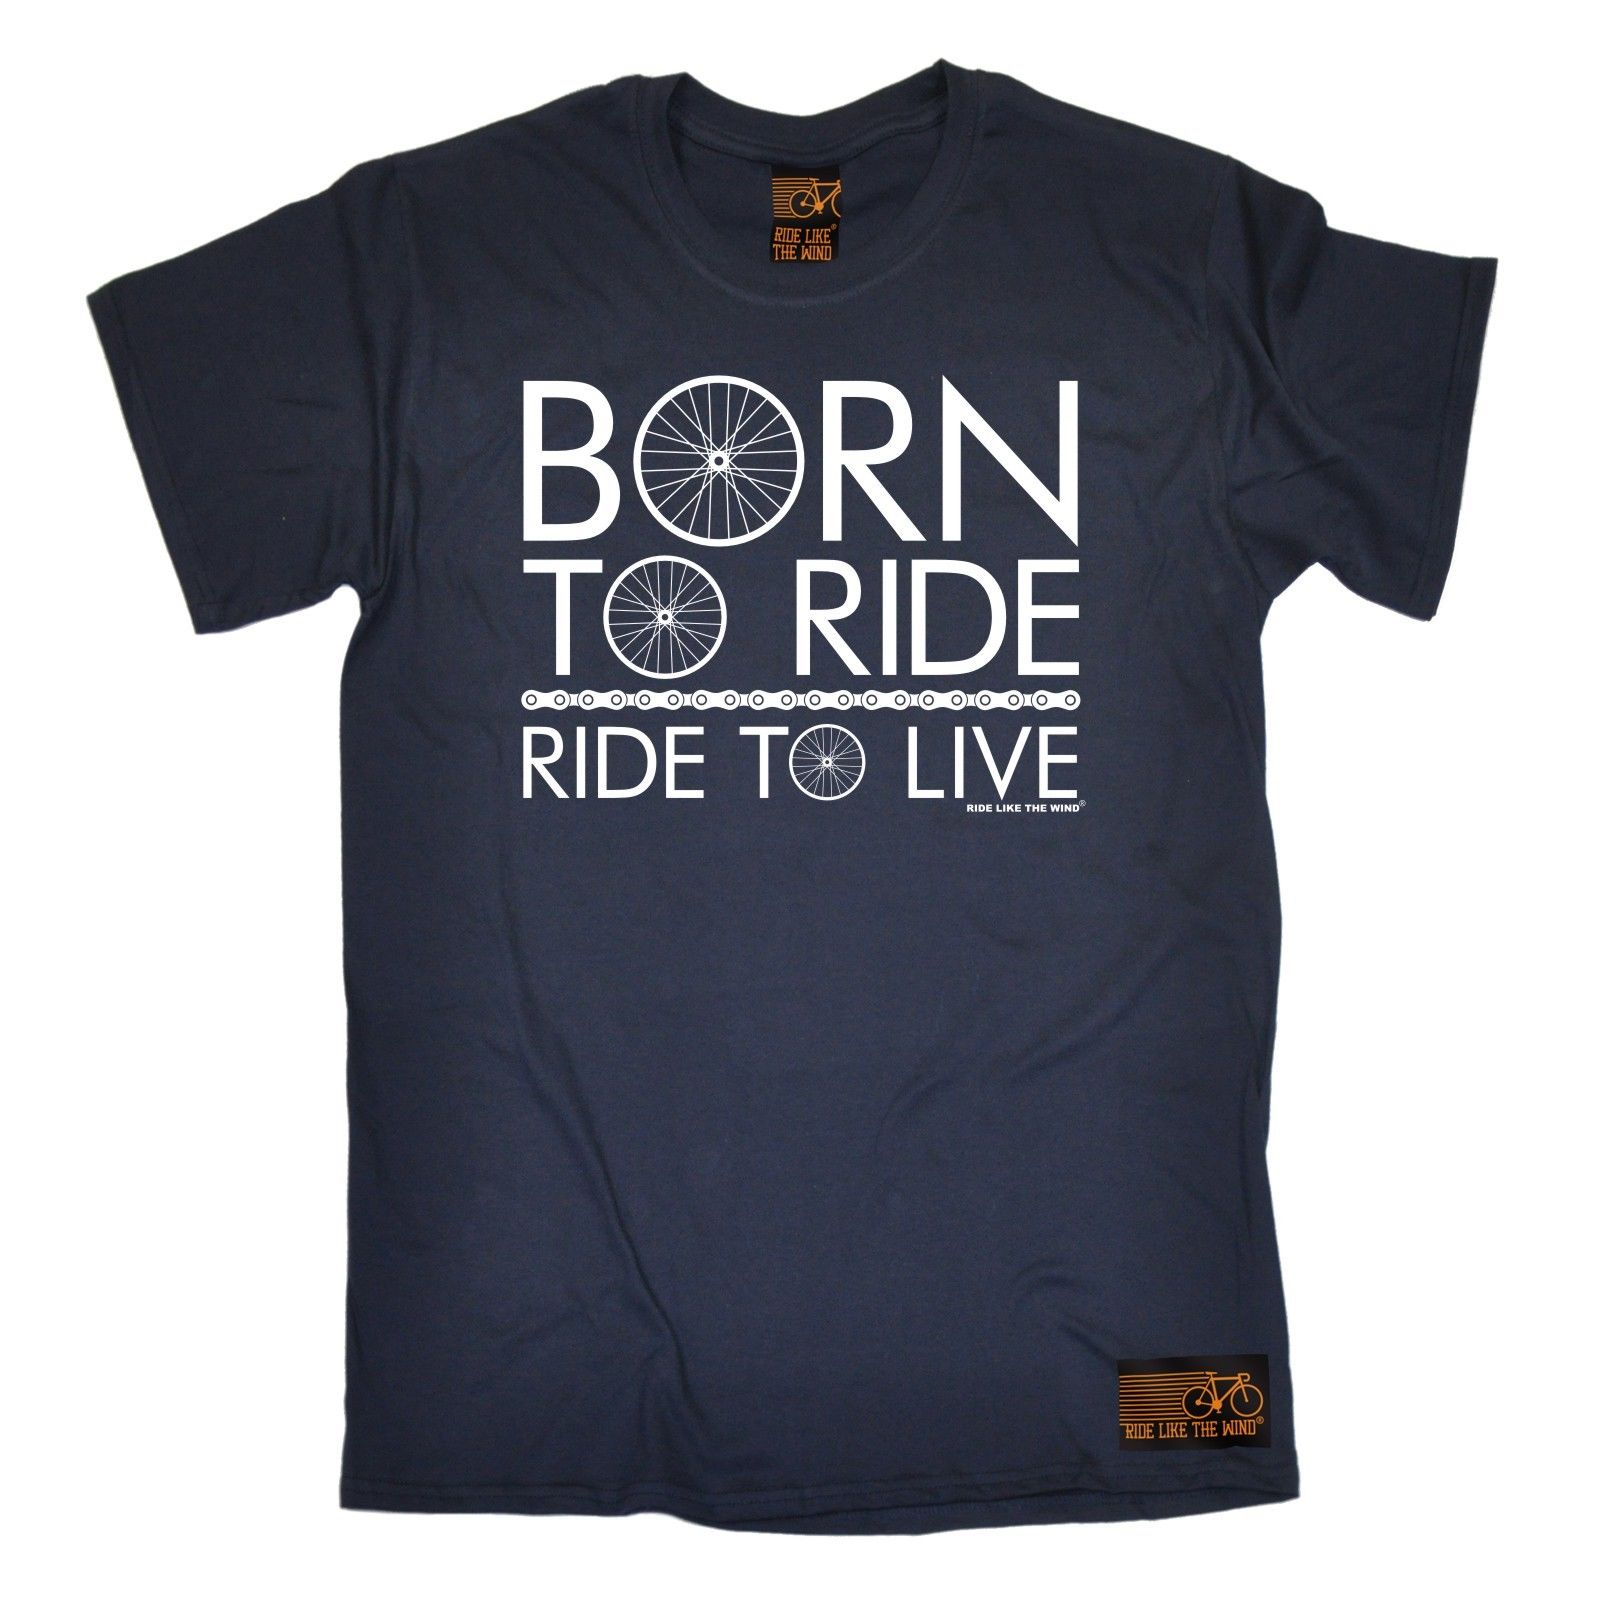 Born To Ride Ride To Live T-SHIRT Cycler Bicycle Biker Bmx Funny Gift Birthday Hot Selli ...